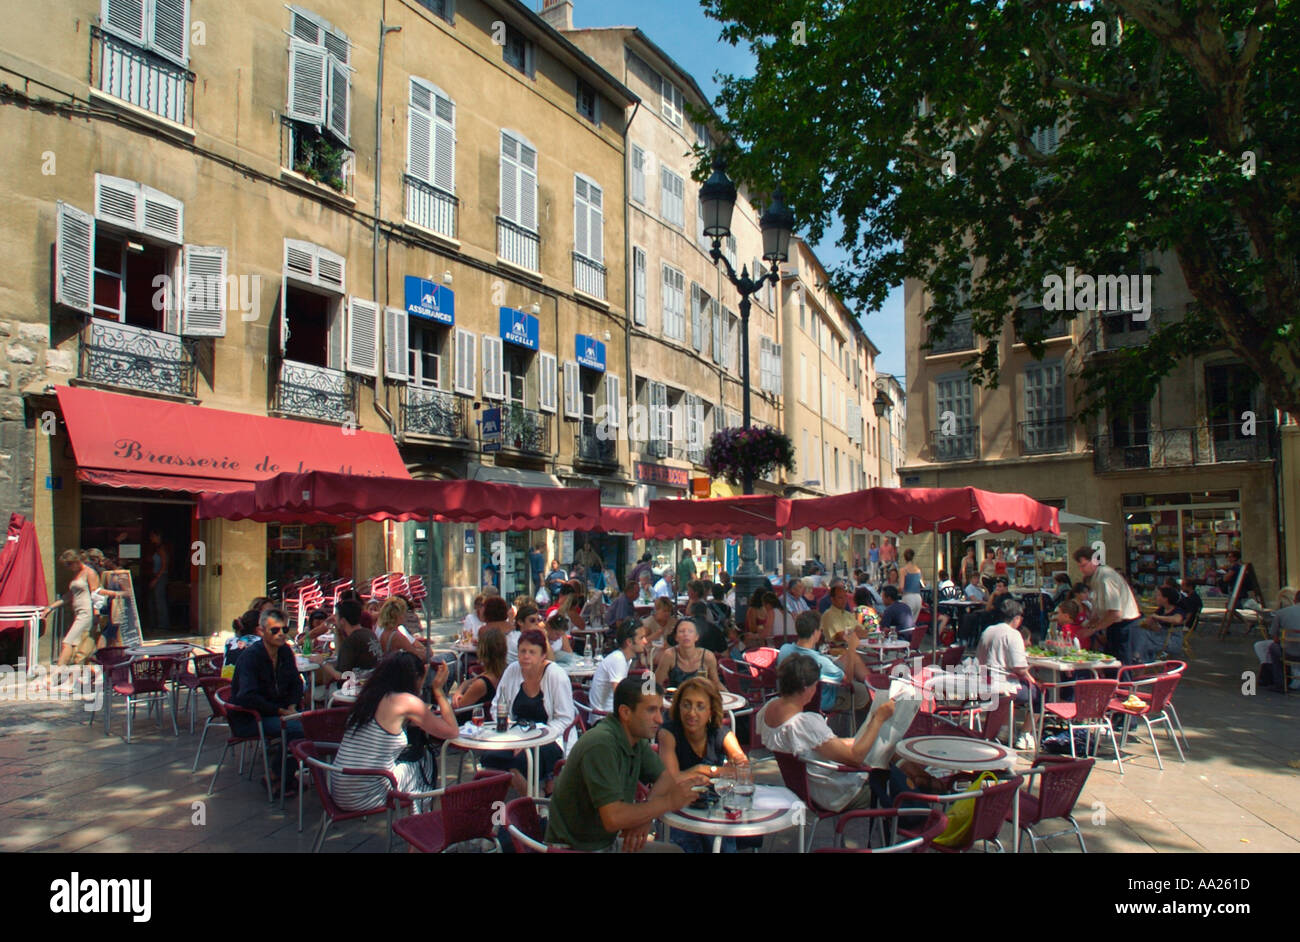 restaurant in the town aix en provence stock photo royalty free image 665117 alamy